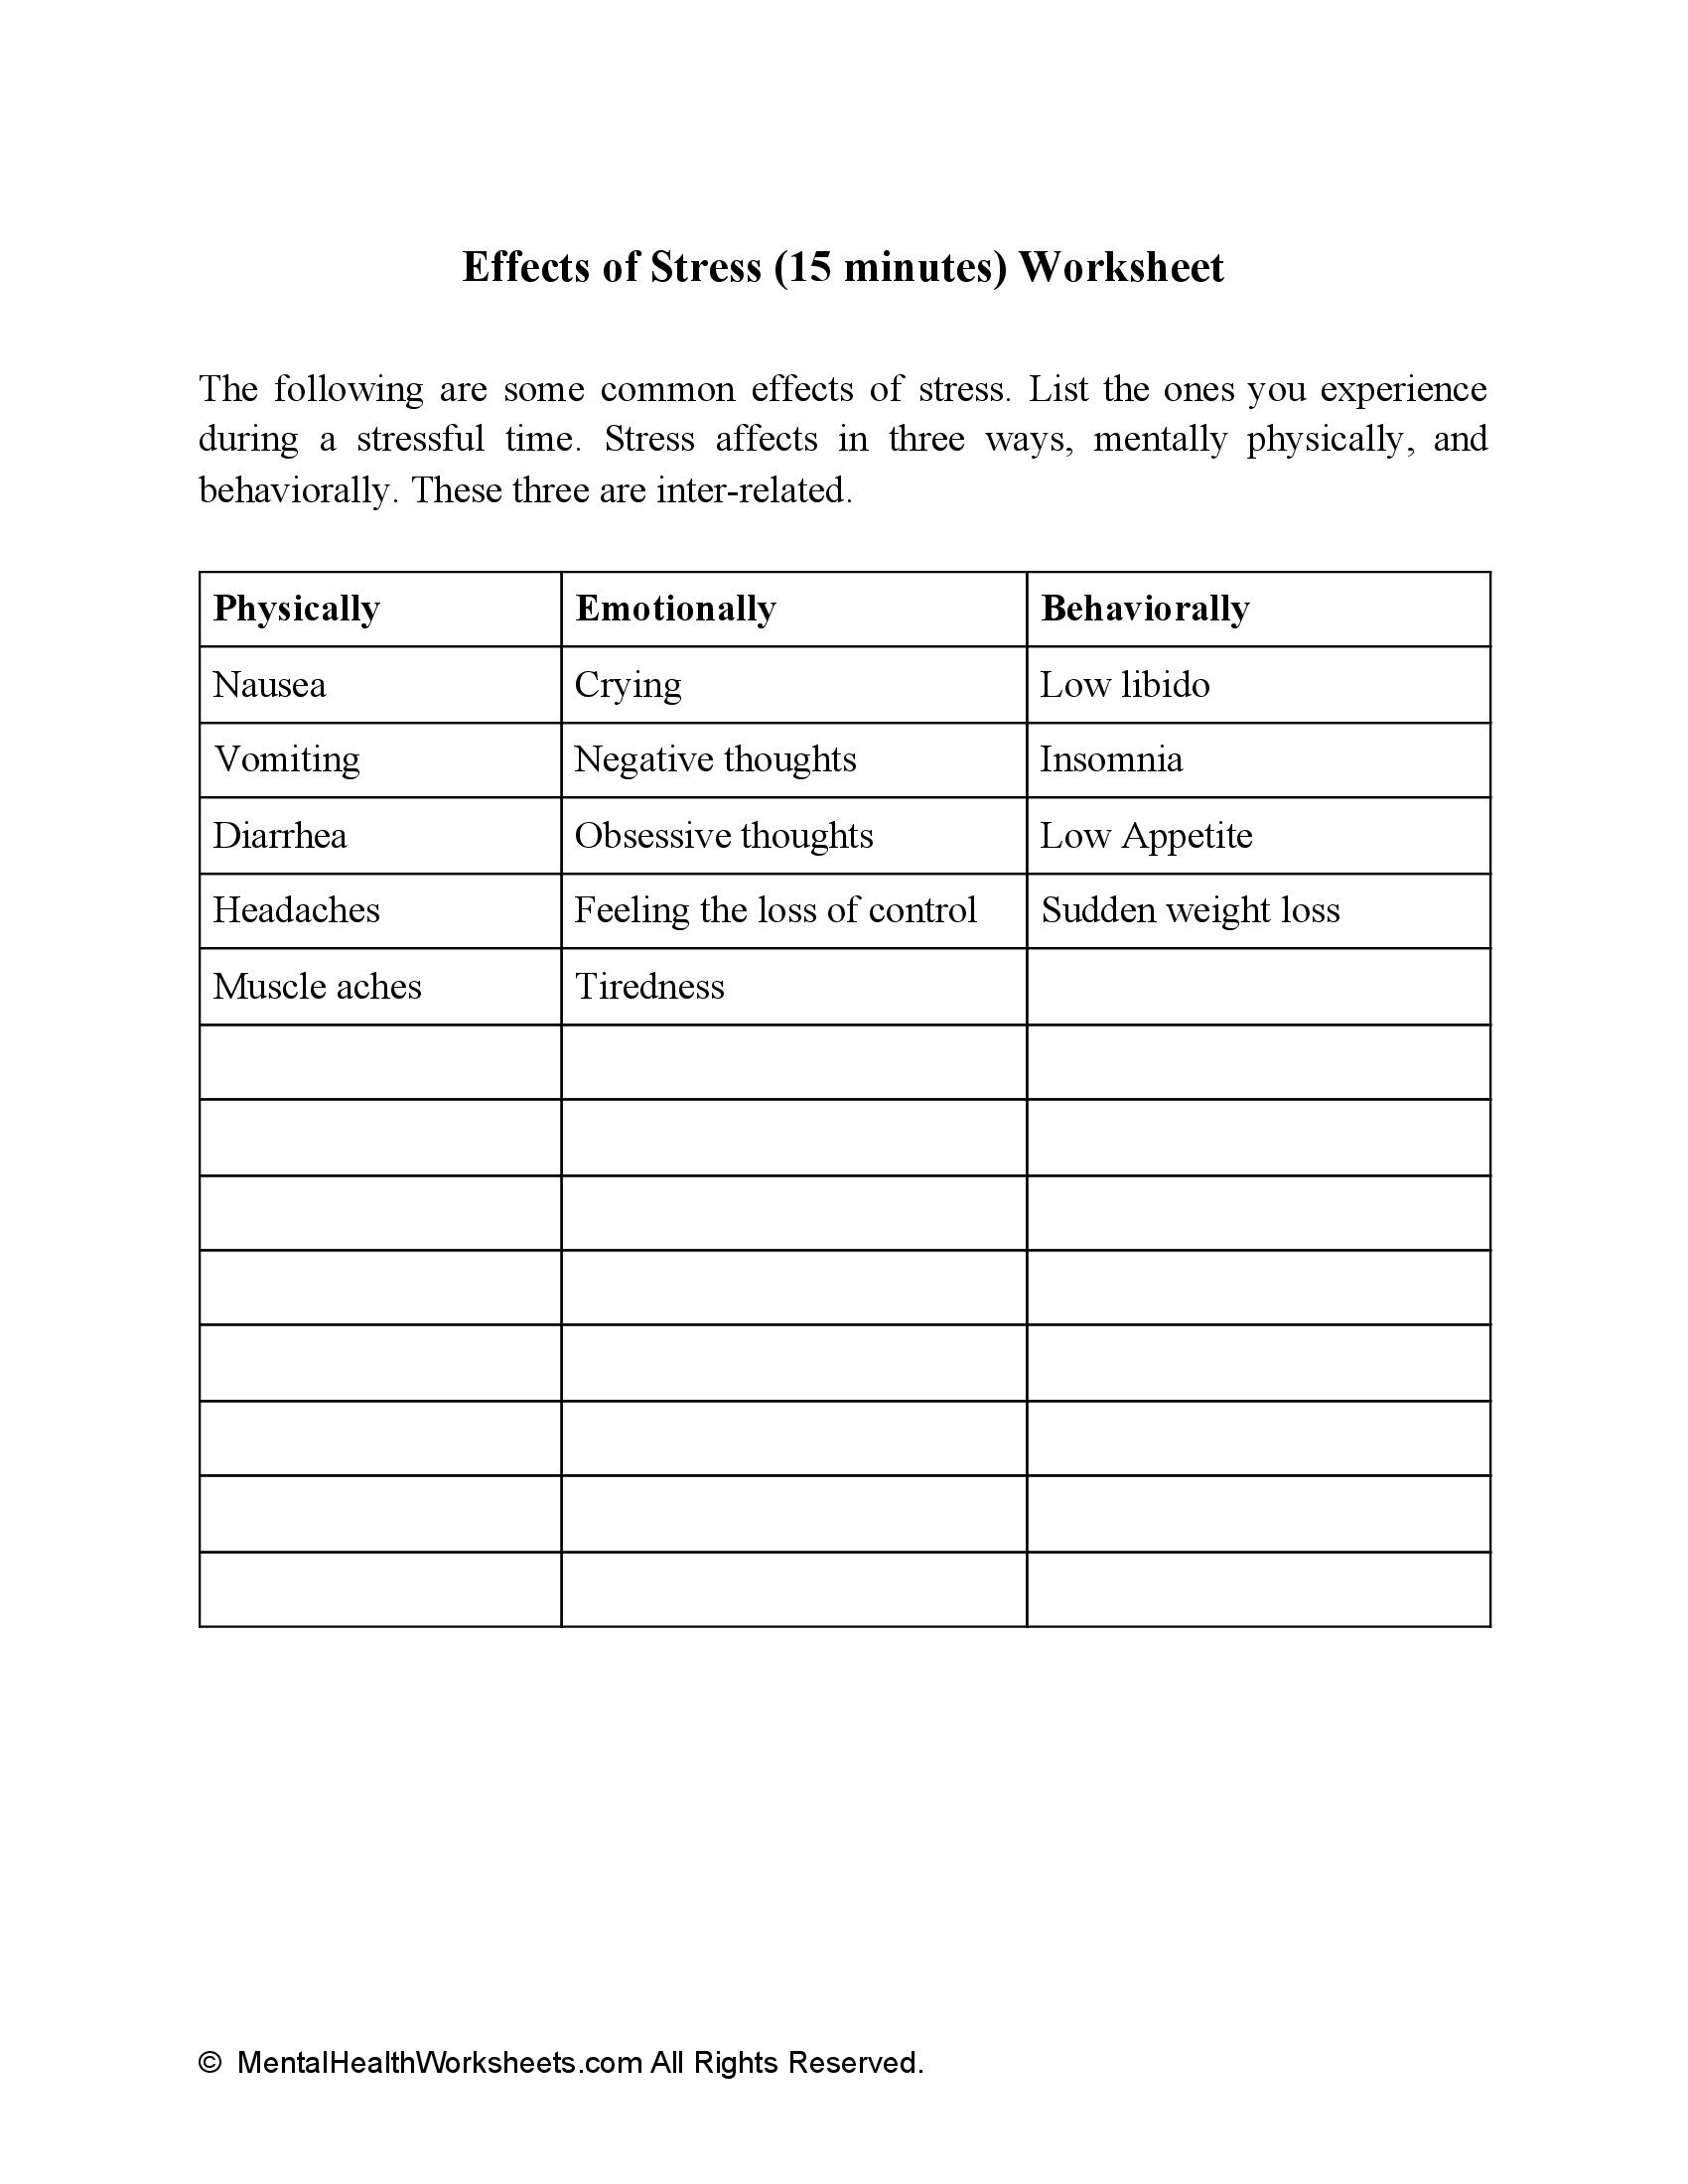 Effects of Stress (15 minutes) Worksheet